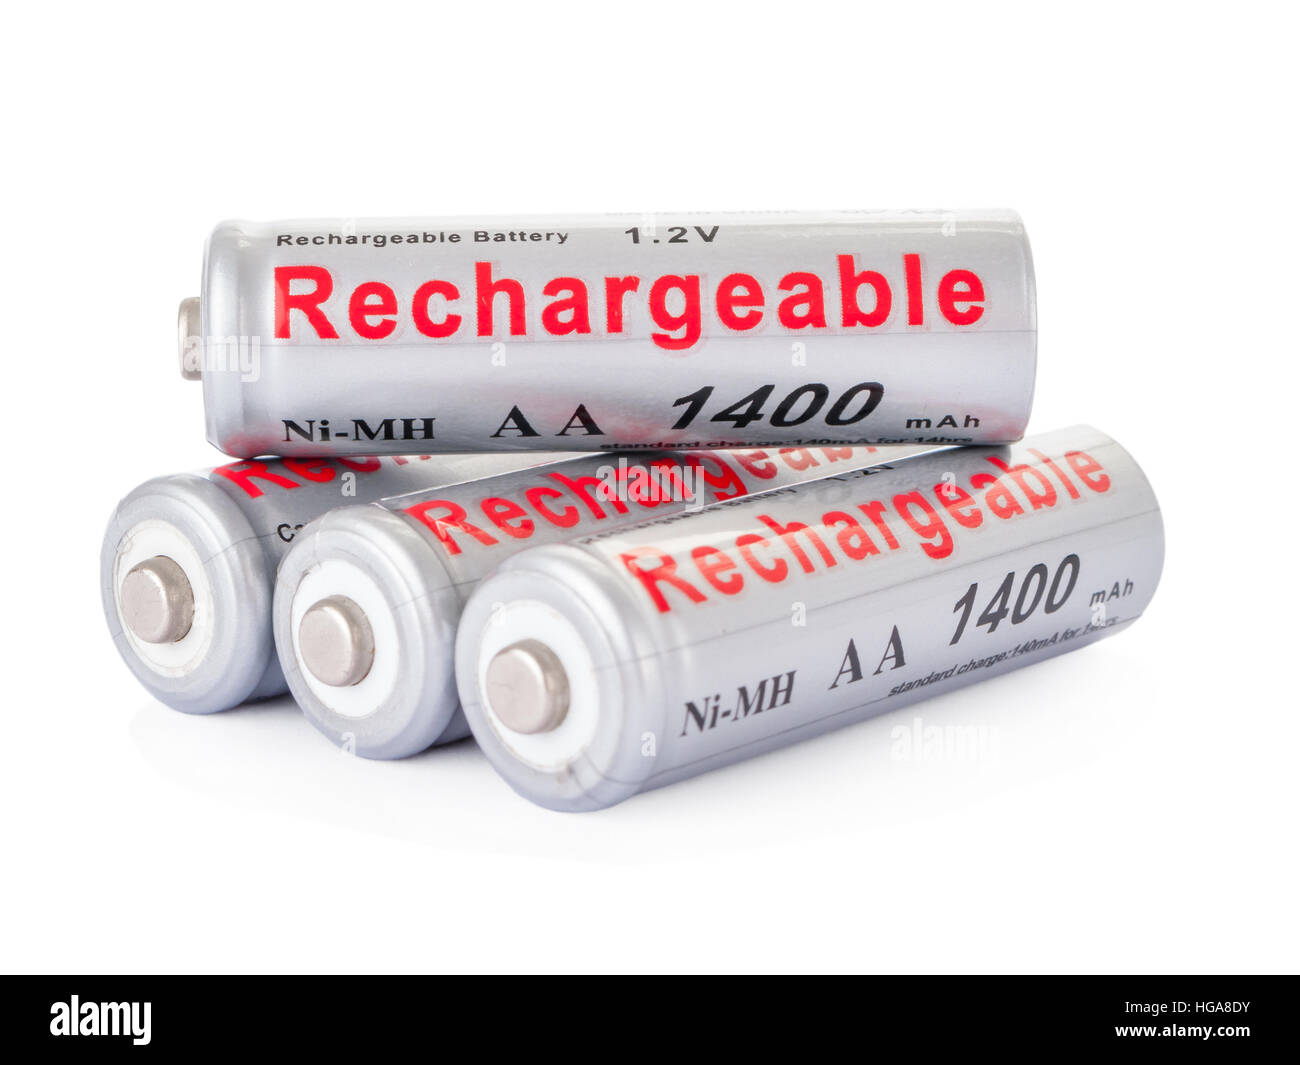 Rechargeable AA batteries isolated on white background. - Stock Image